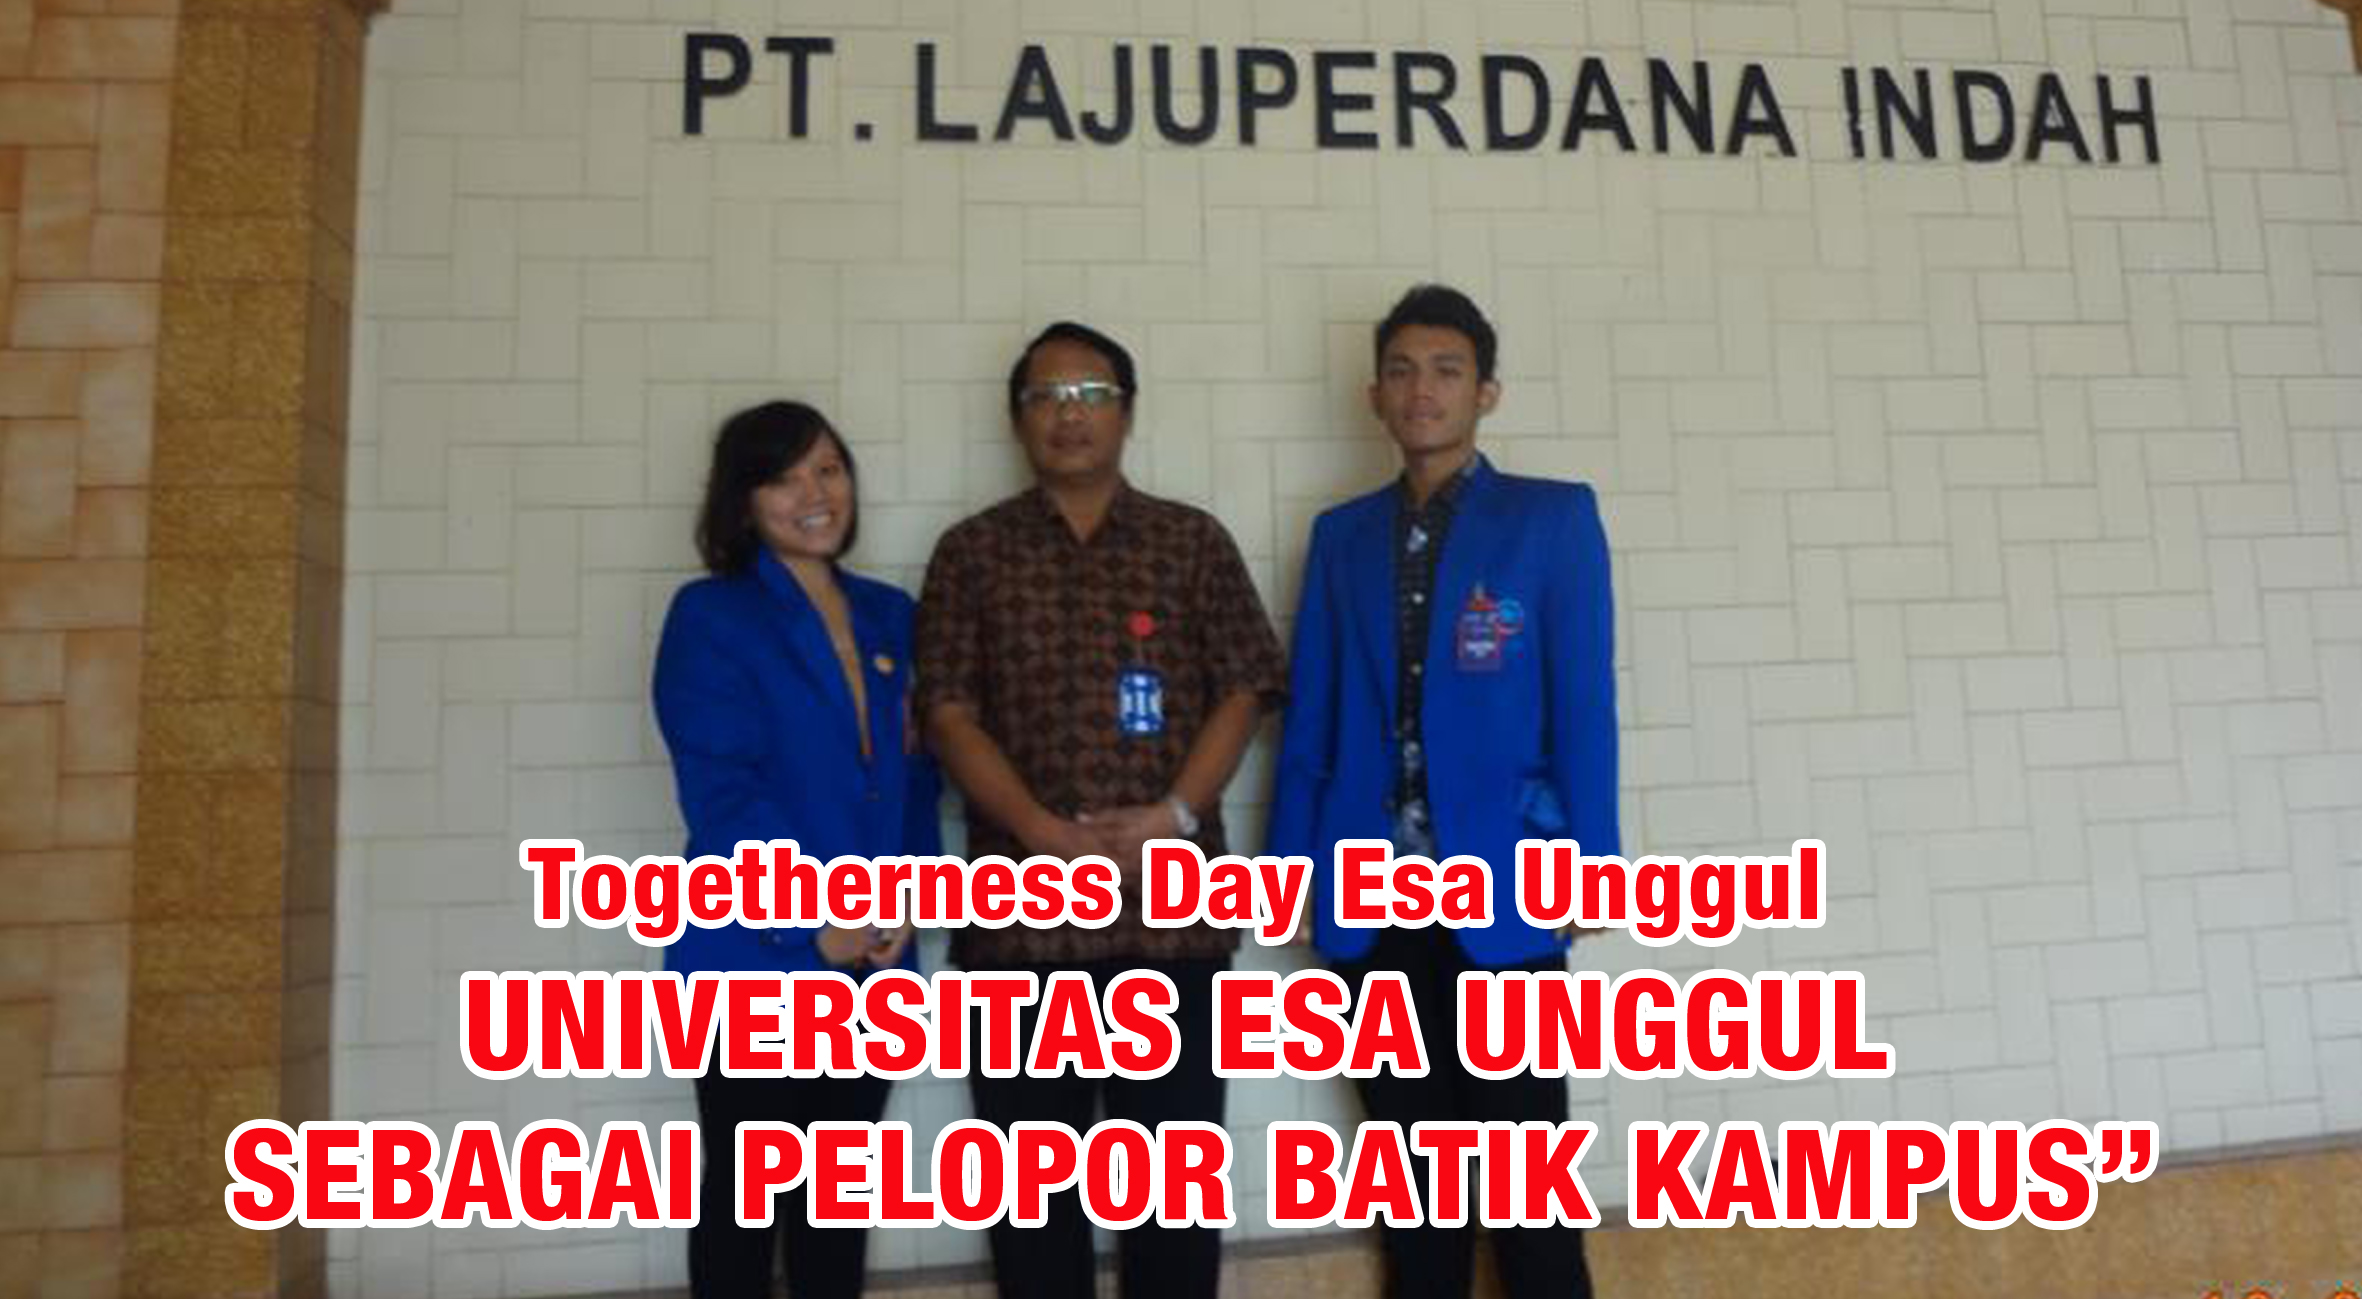 Togetherness Day Esa Unggul – Universitas Esa Unggul sebagai Pelopor Batik Kampus